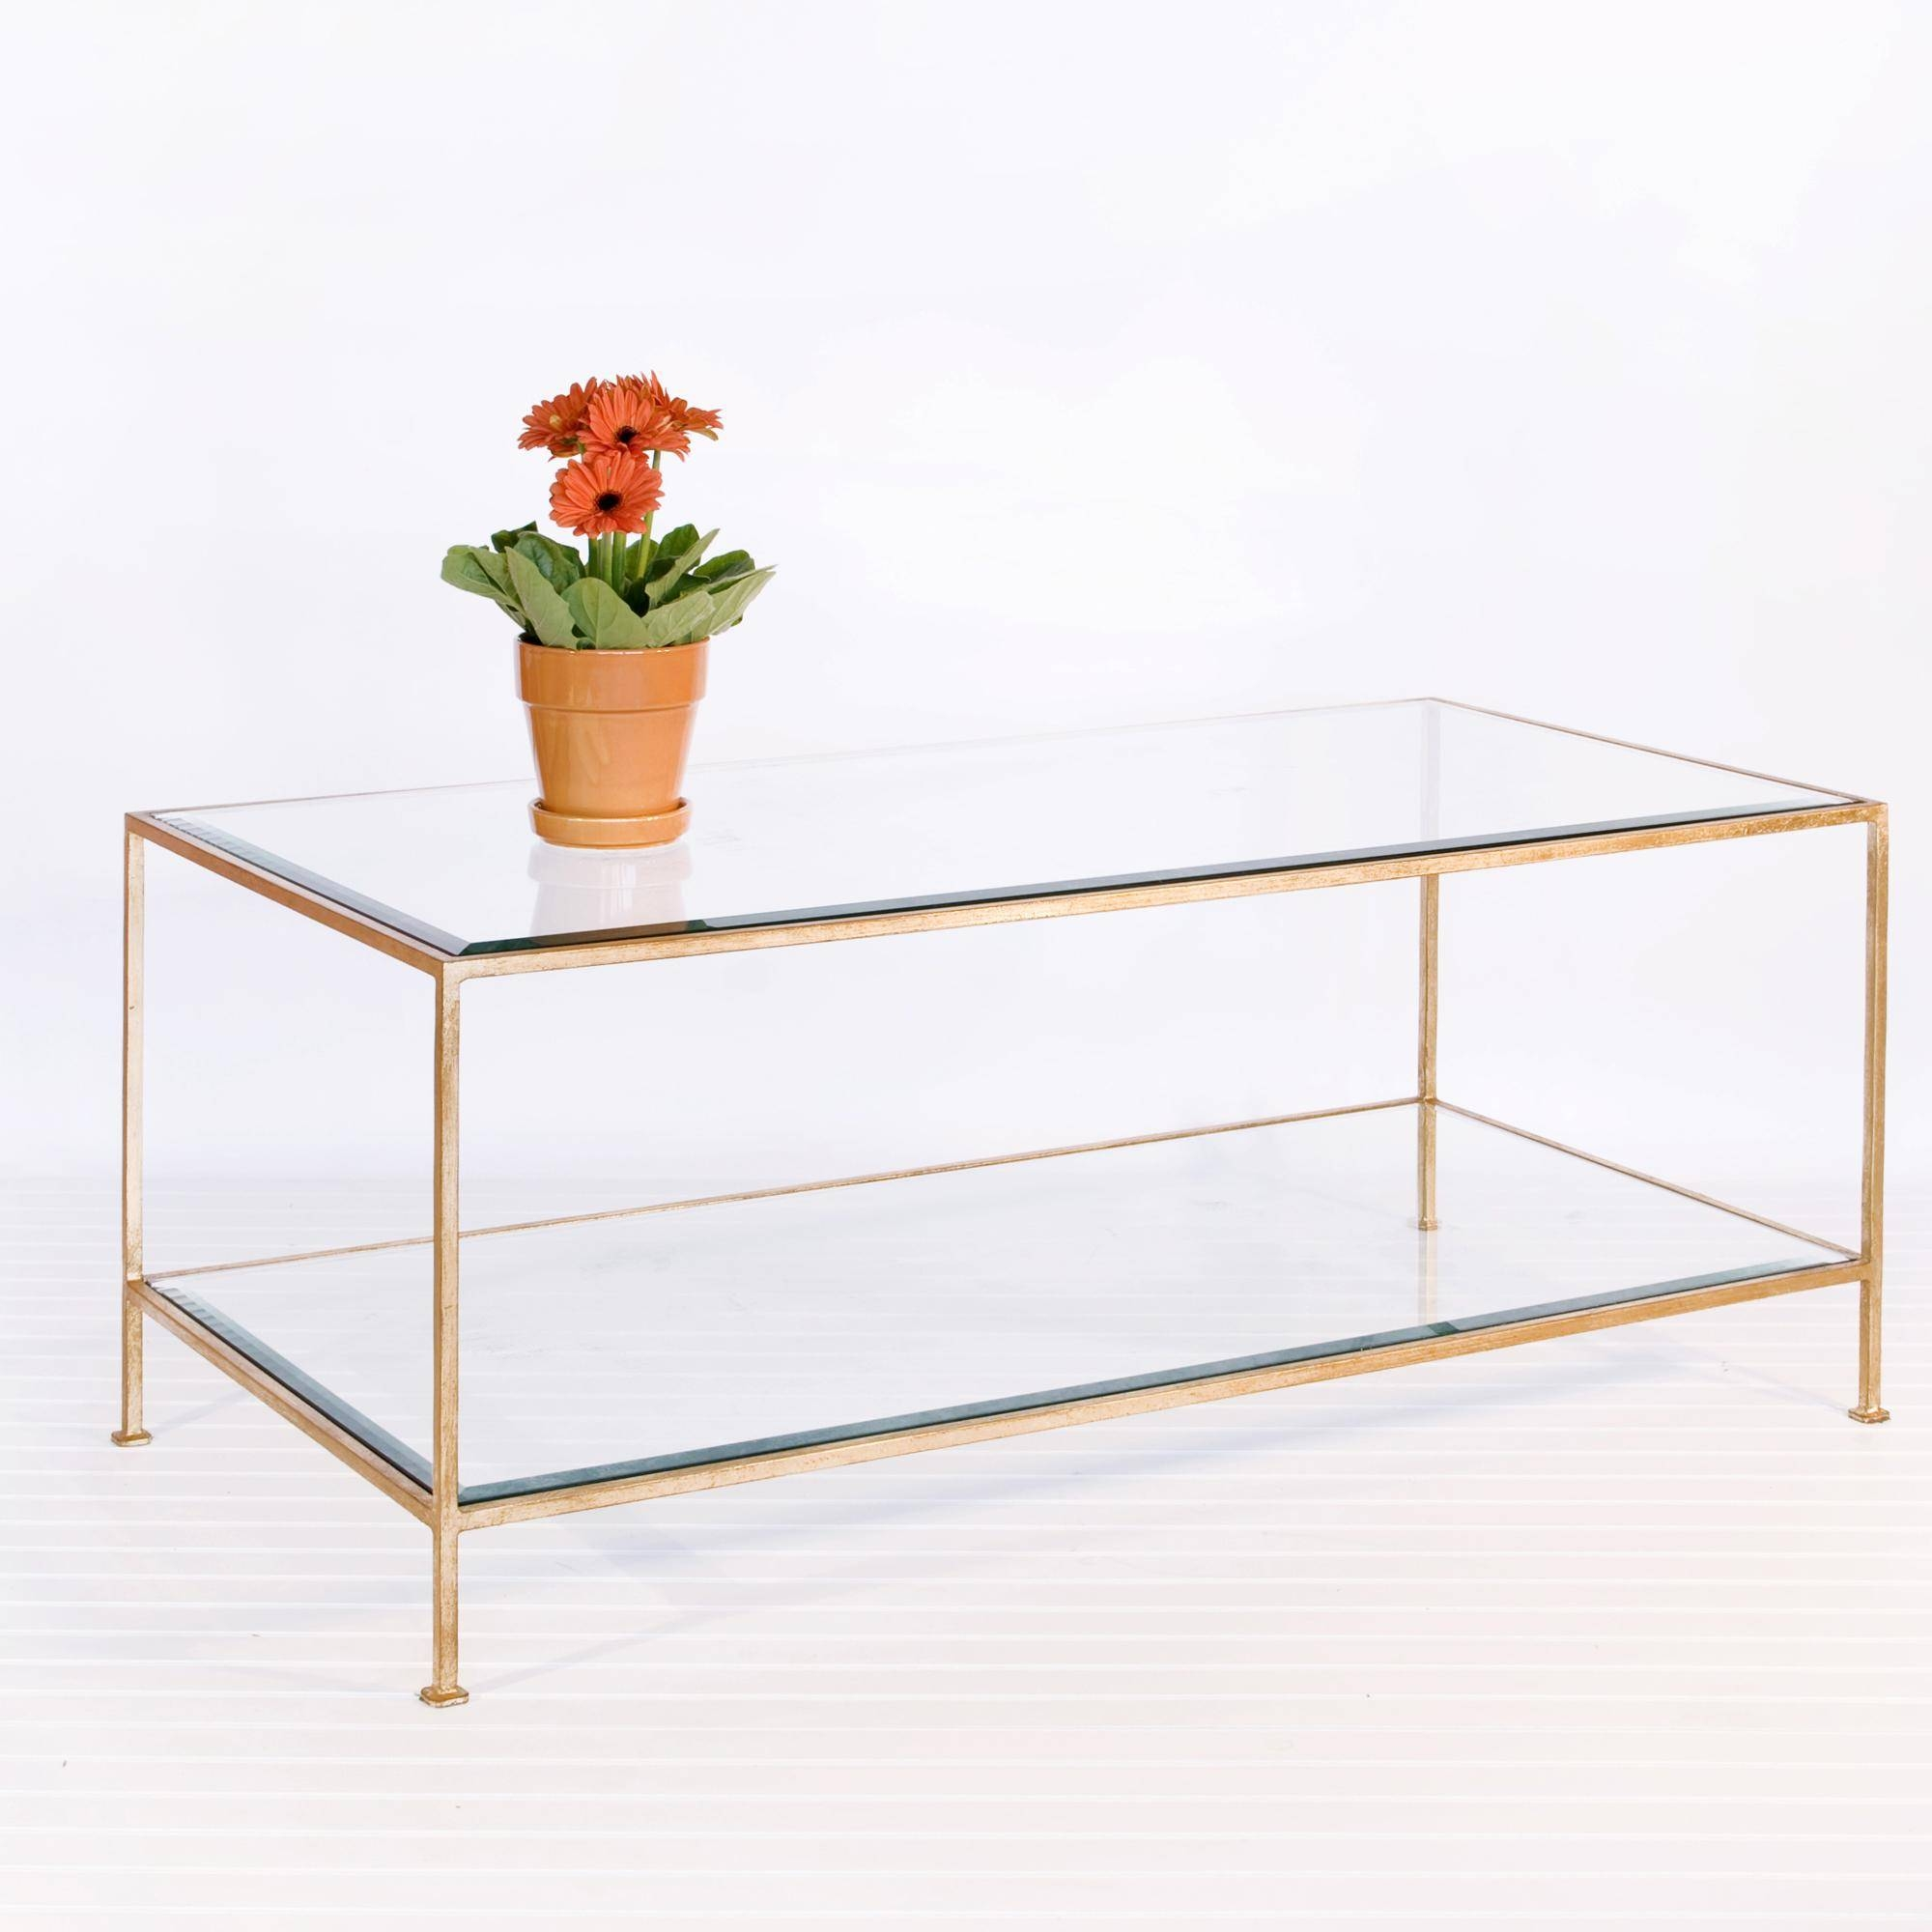 Coffee Table: Enchanting Gold Glass Coffee Table Design Ideas inside Glass Coffee Tables With Shelf (Image 7 of 30)